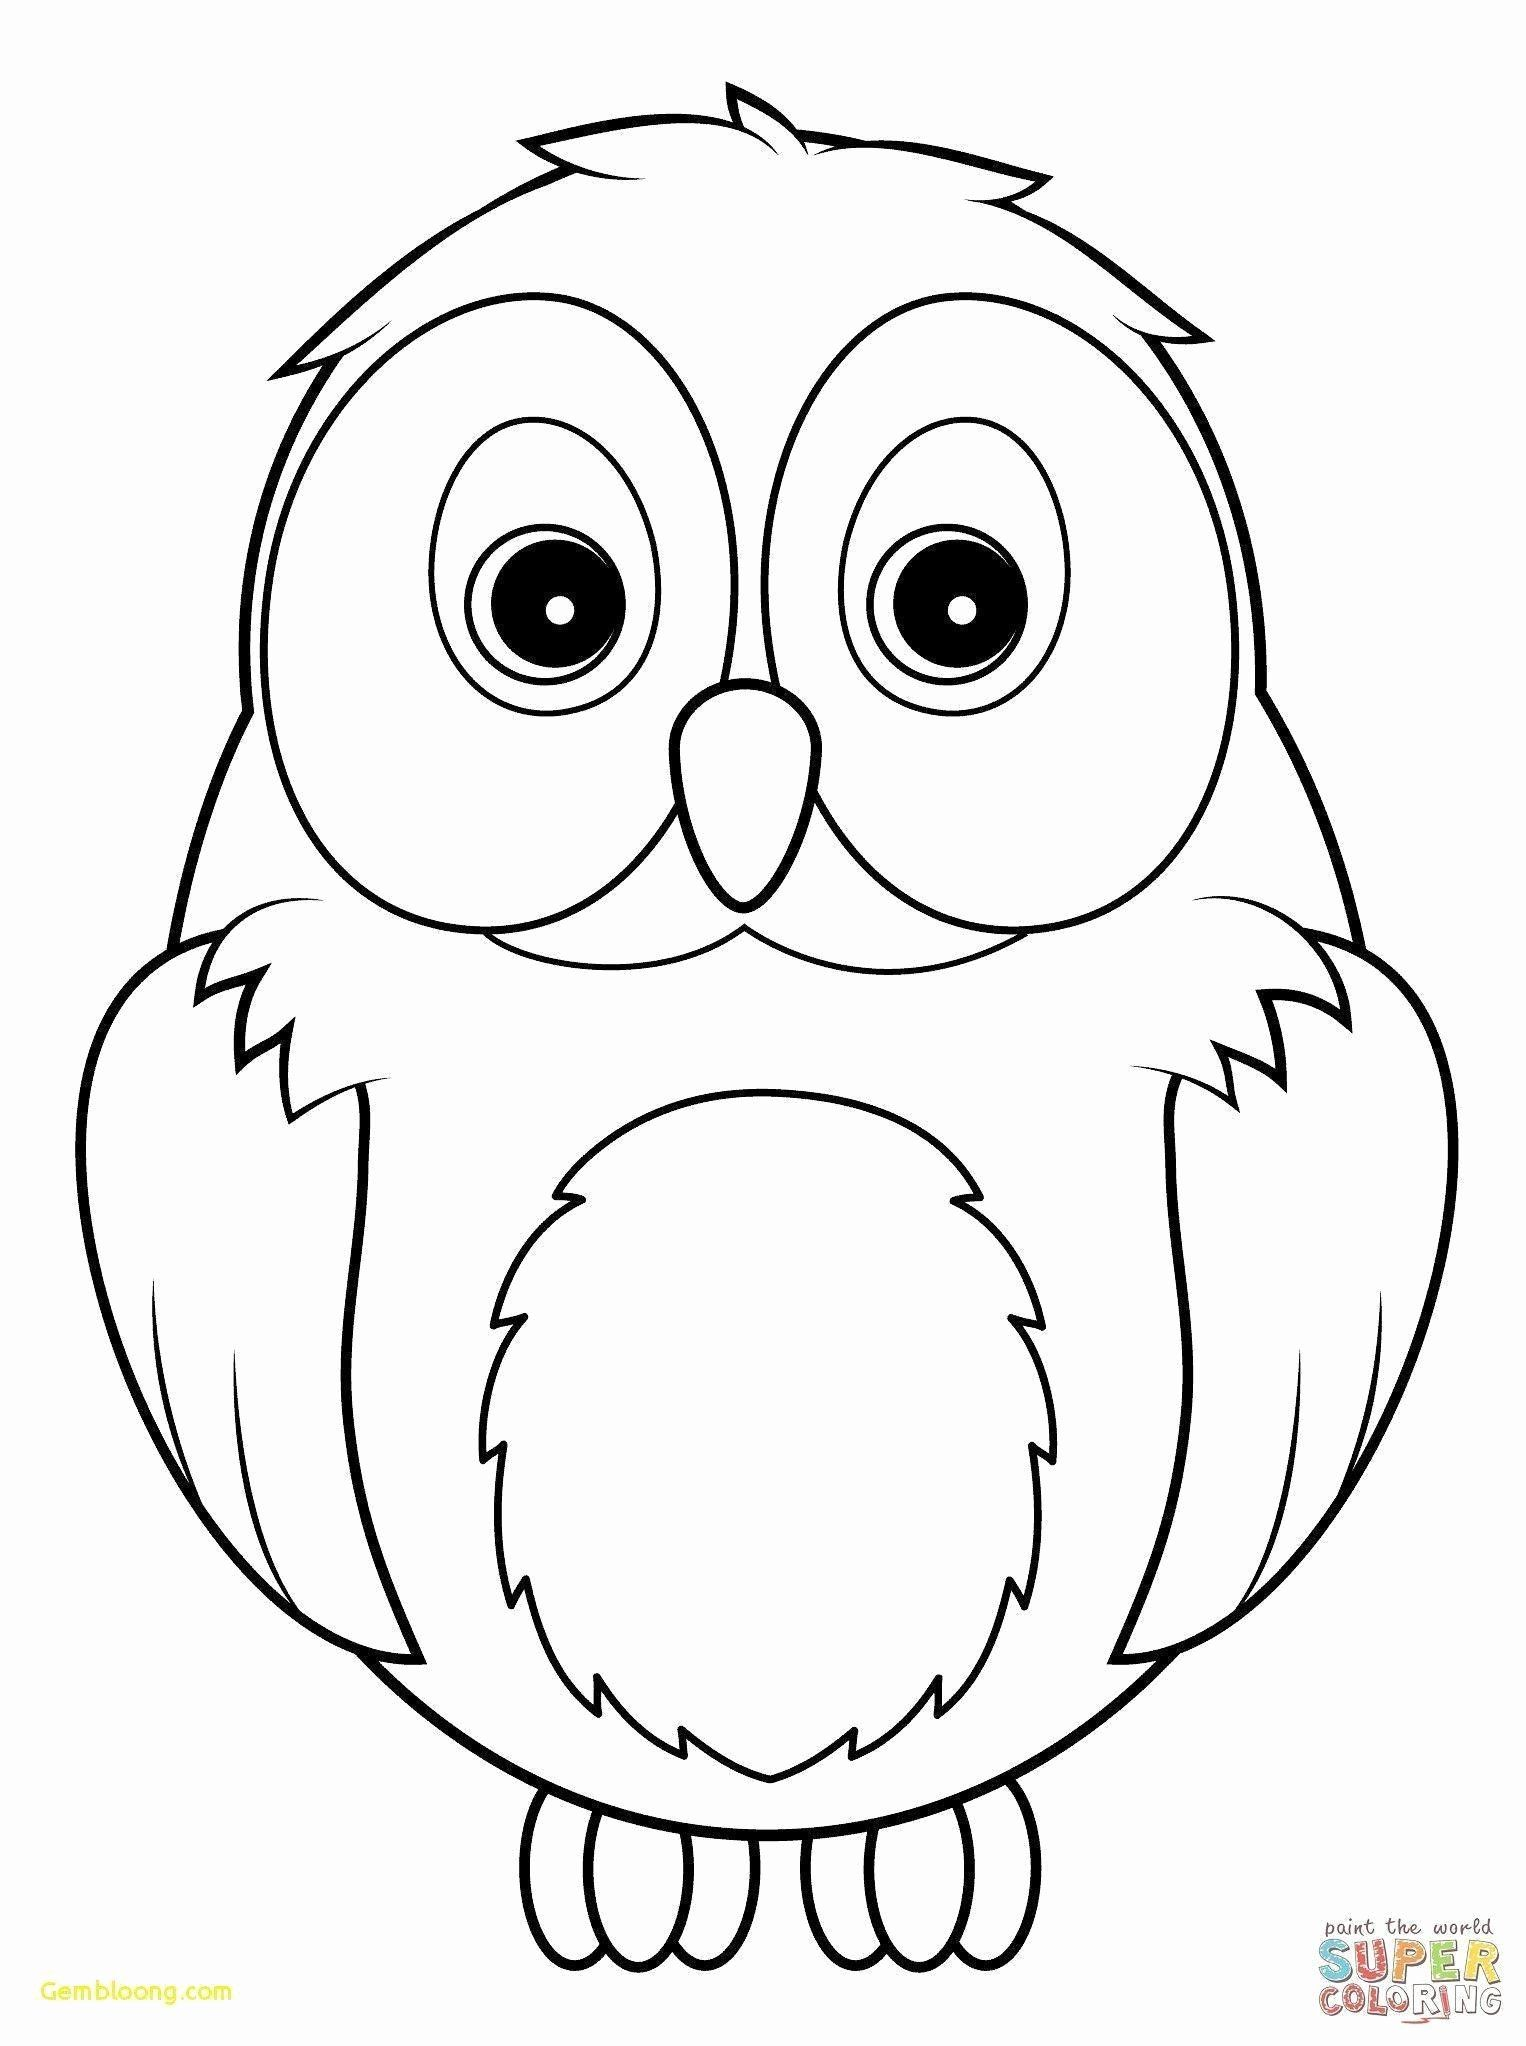 Coloring Page Of Owl Lovely Coloring Pages Page 287